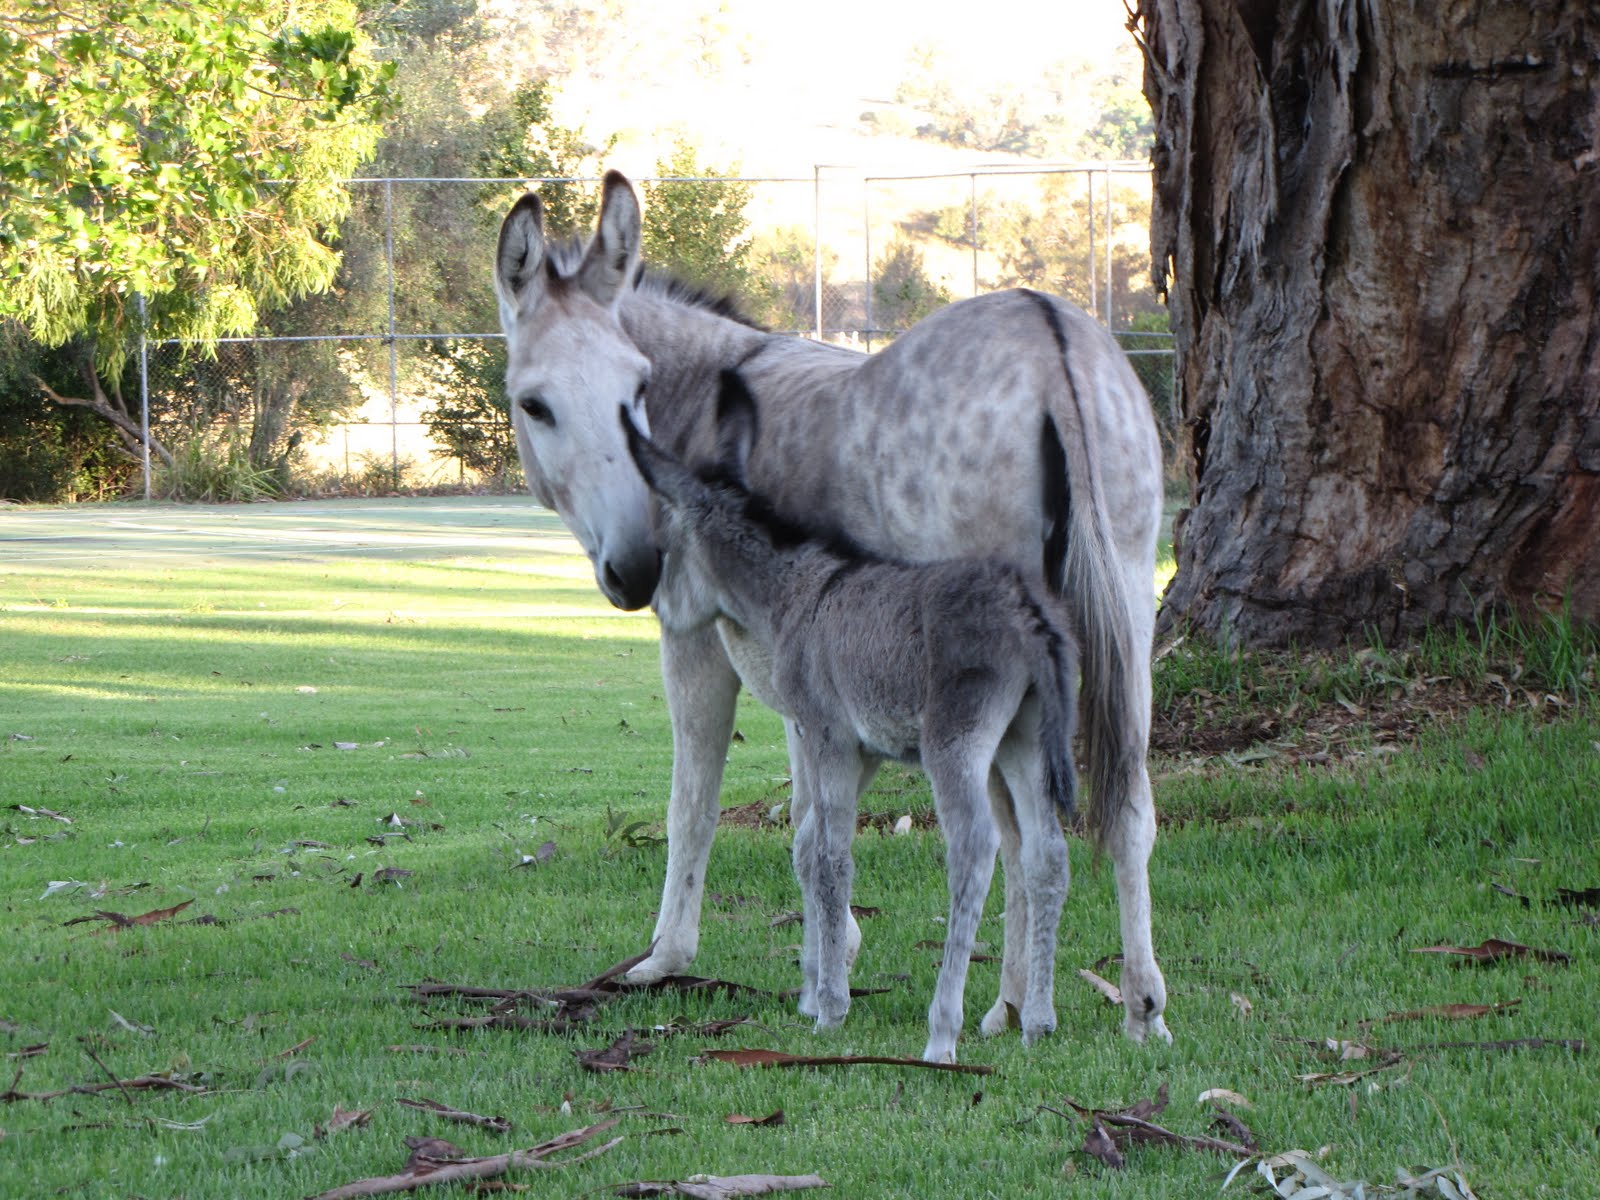 The Belltrees Menagerie Boasts A New Baby Donkey